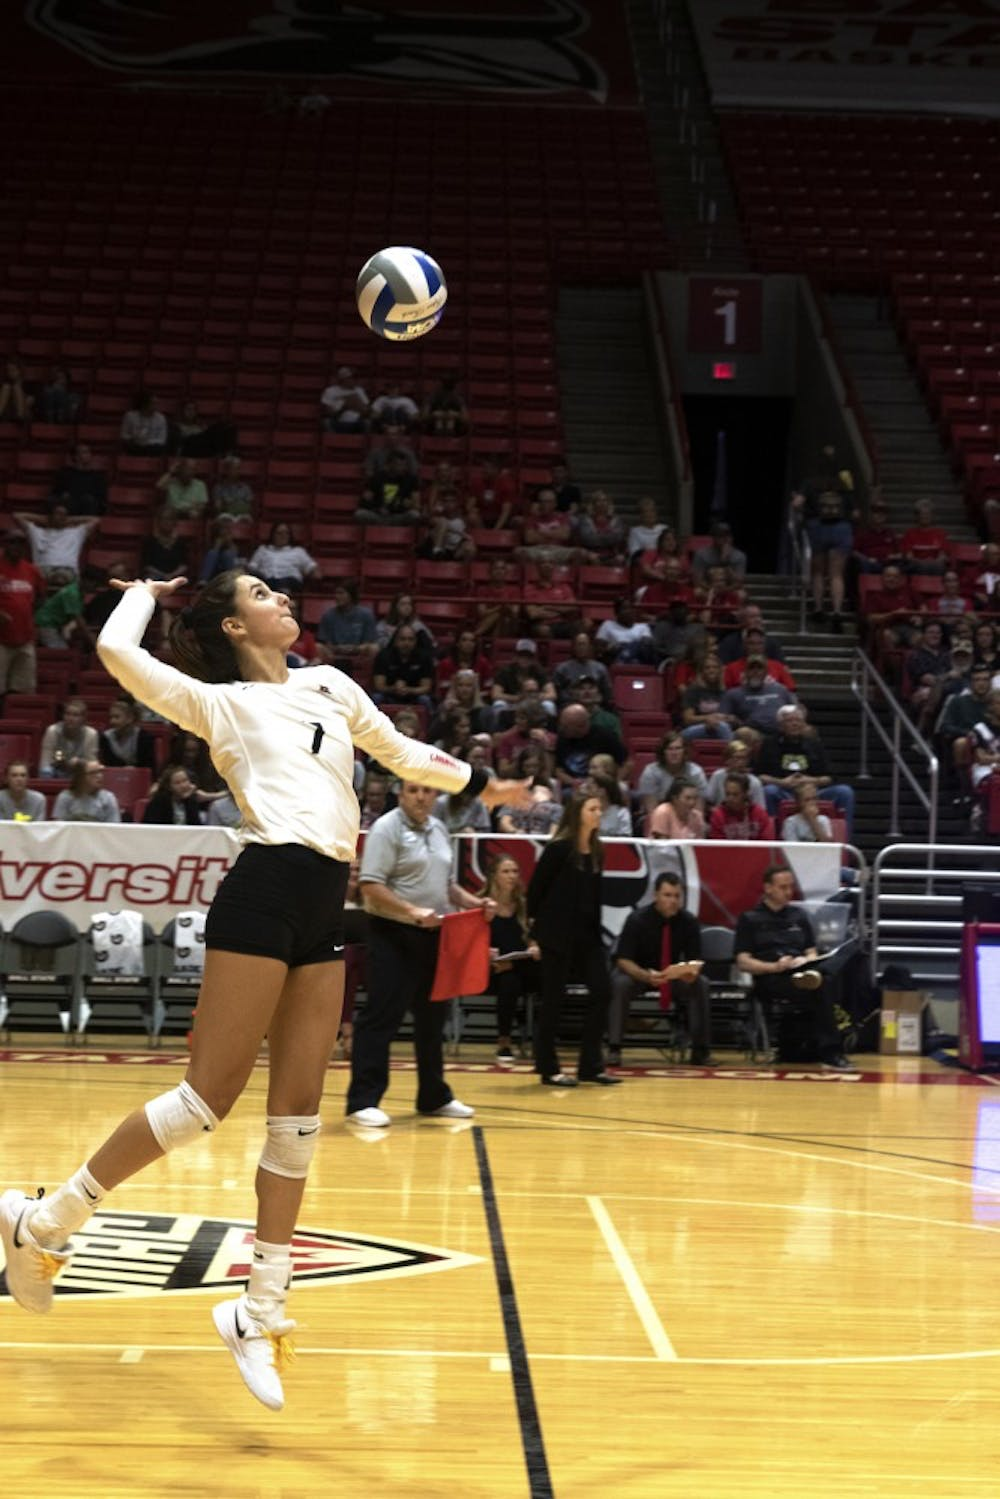 <p>Freshman outside hitter, Natalie Risi (7), serves the ball during the first set of their match against Austin Peay on September 20, 2019, at Worthen Arena. Ball State won the match 3-0. <strong>Jaden Whiteman, DN</strong></p>